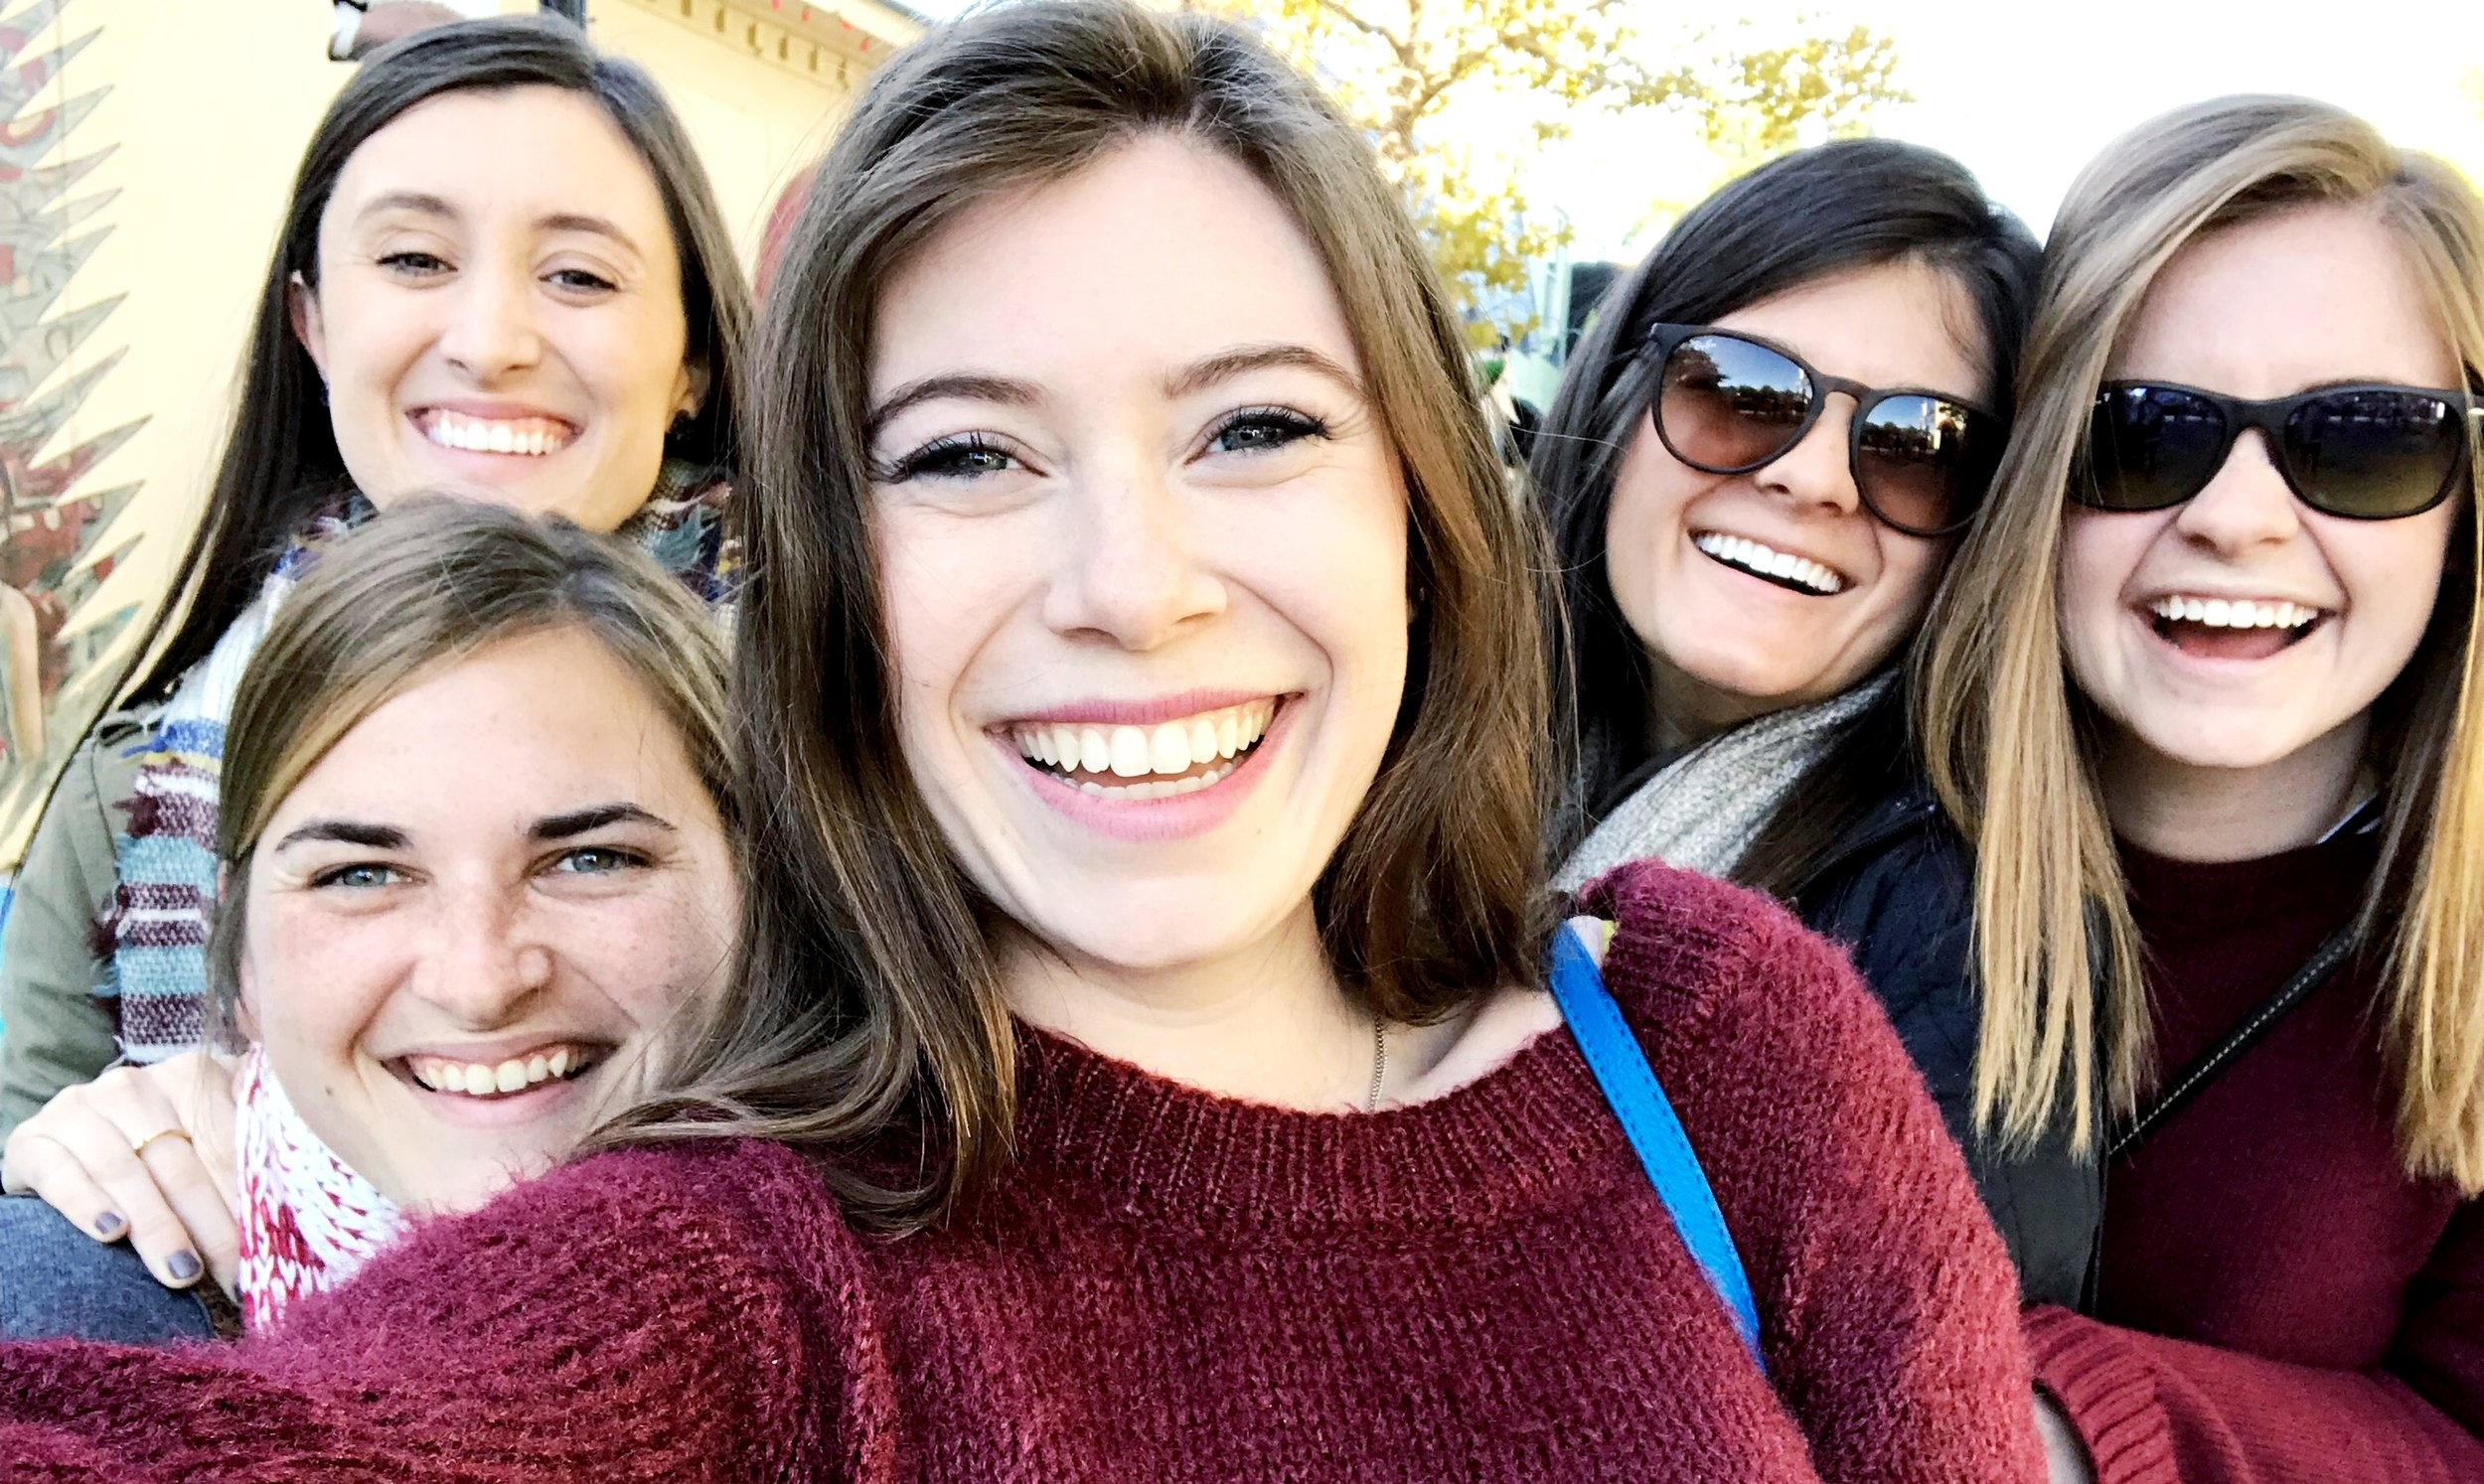 sometimes all ya need is a day of laughing with your girls